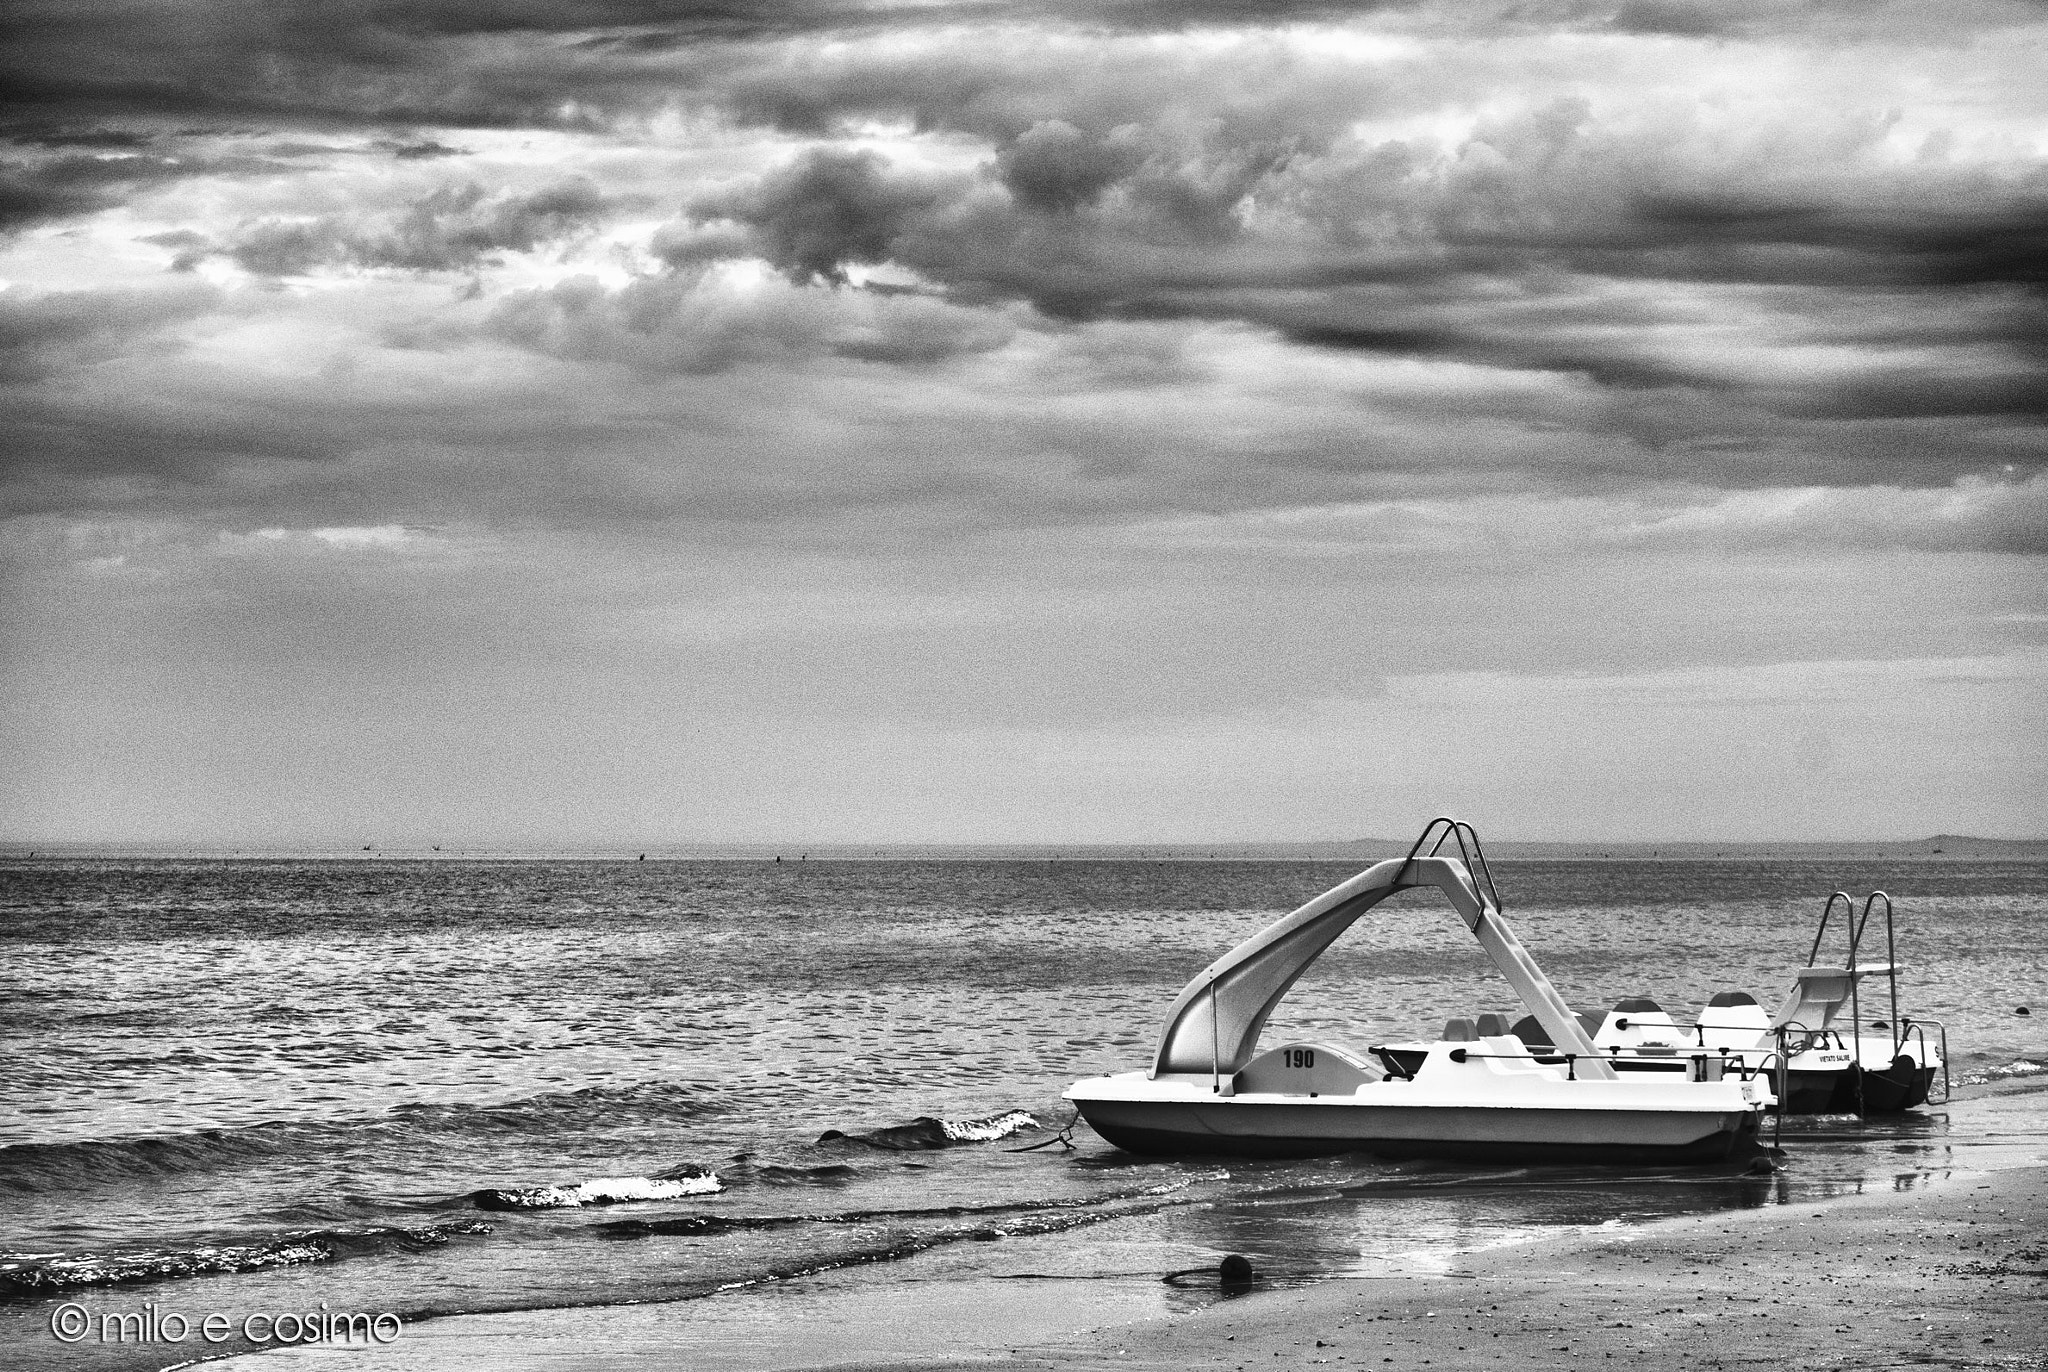 Photograph waiting for summer by Milo E Cosimo Fanfoto on 500px